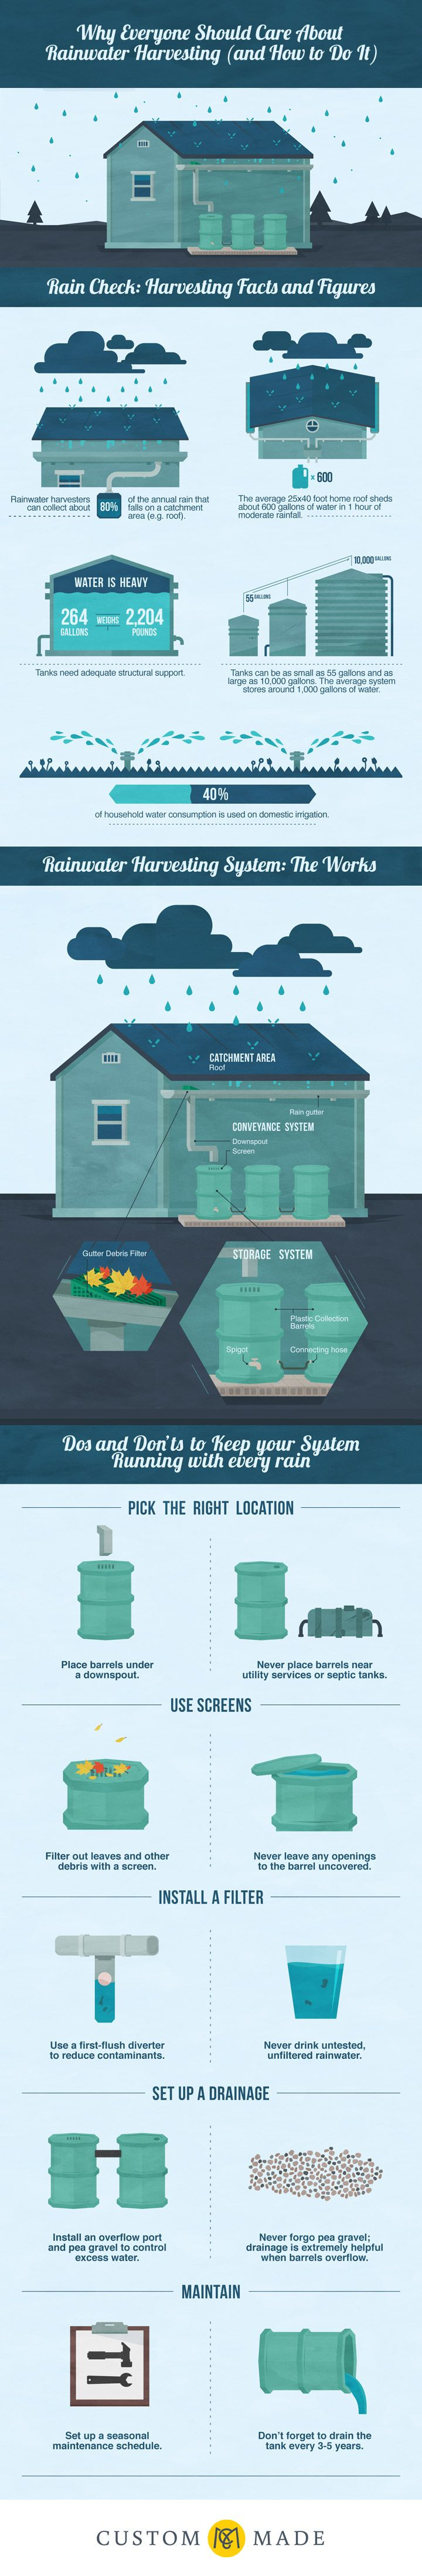 Why Everyone Should Care About Rainwater Harvesting Infographic - http://www.custommade.com/blog/rainwater-harvesting/